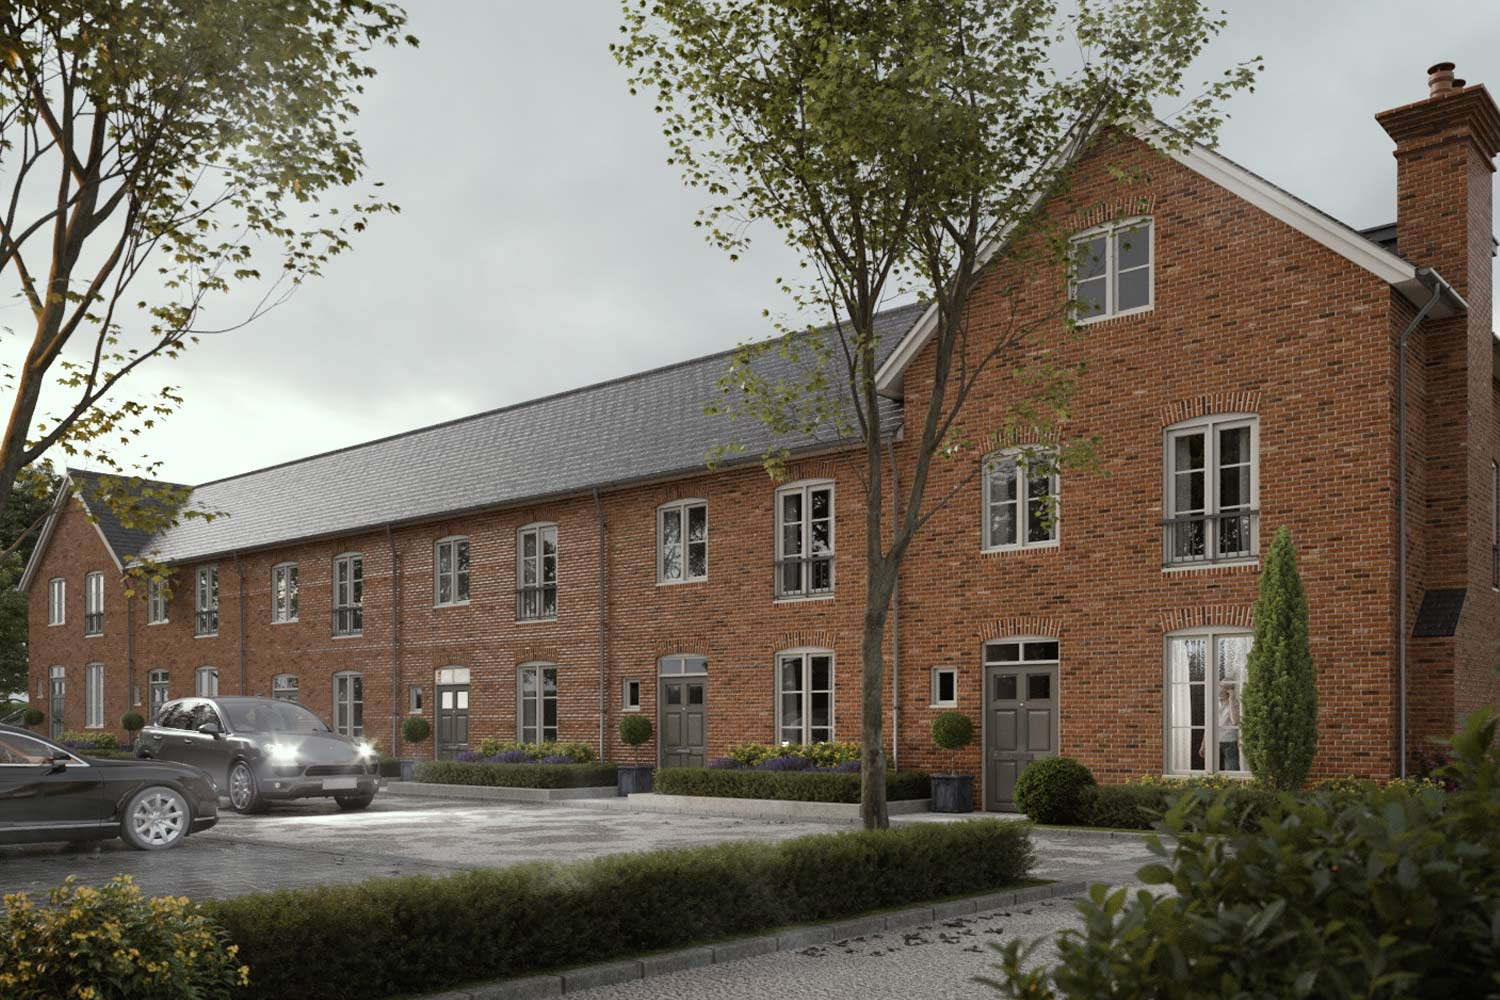 moody-artists-impression-of-residential-development.jpg